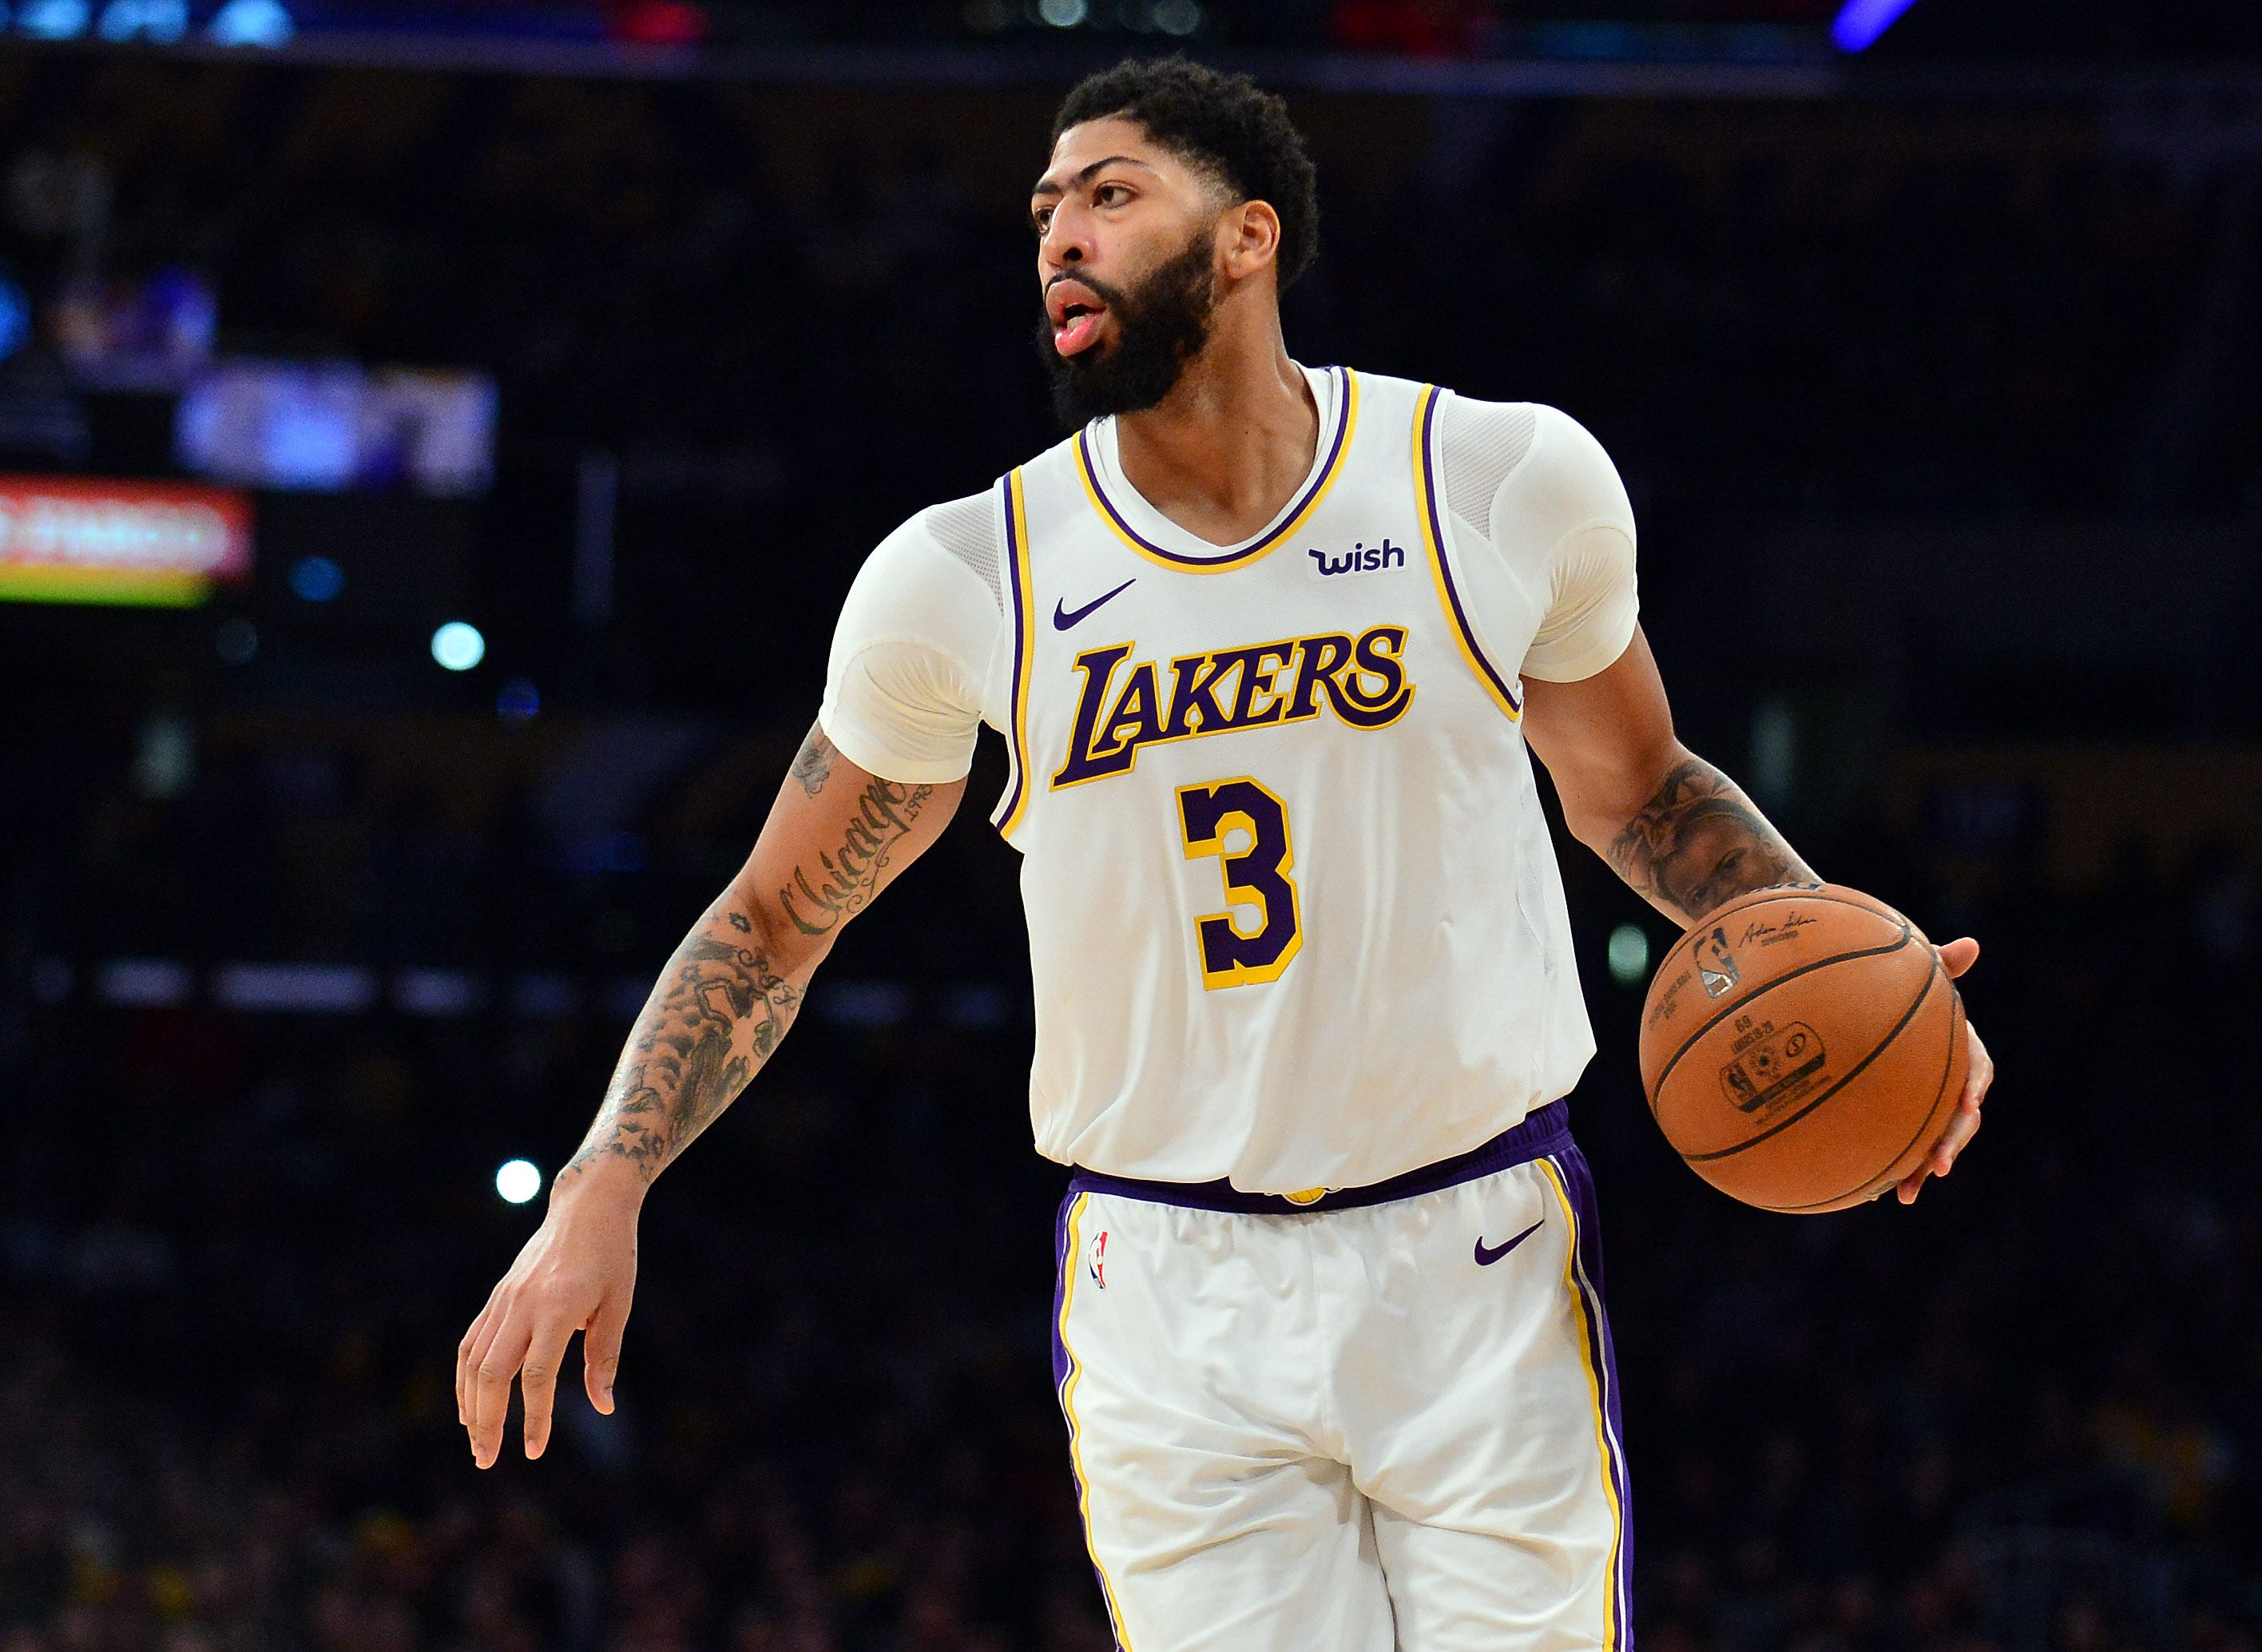 Anthony Davis declines Lakers' extension but expected to stay in L.A.